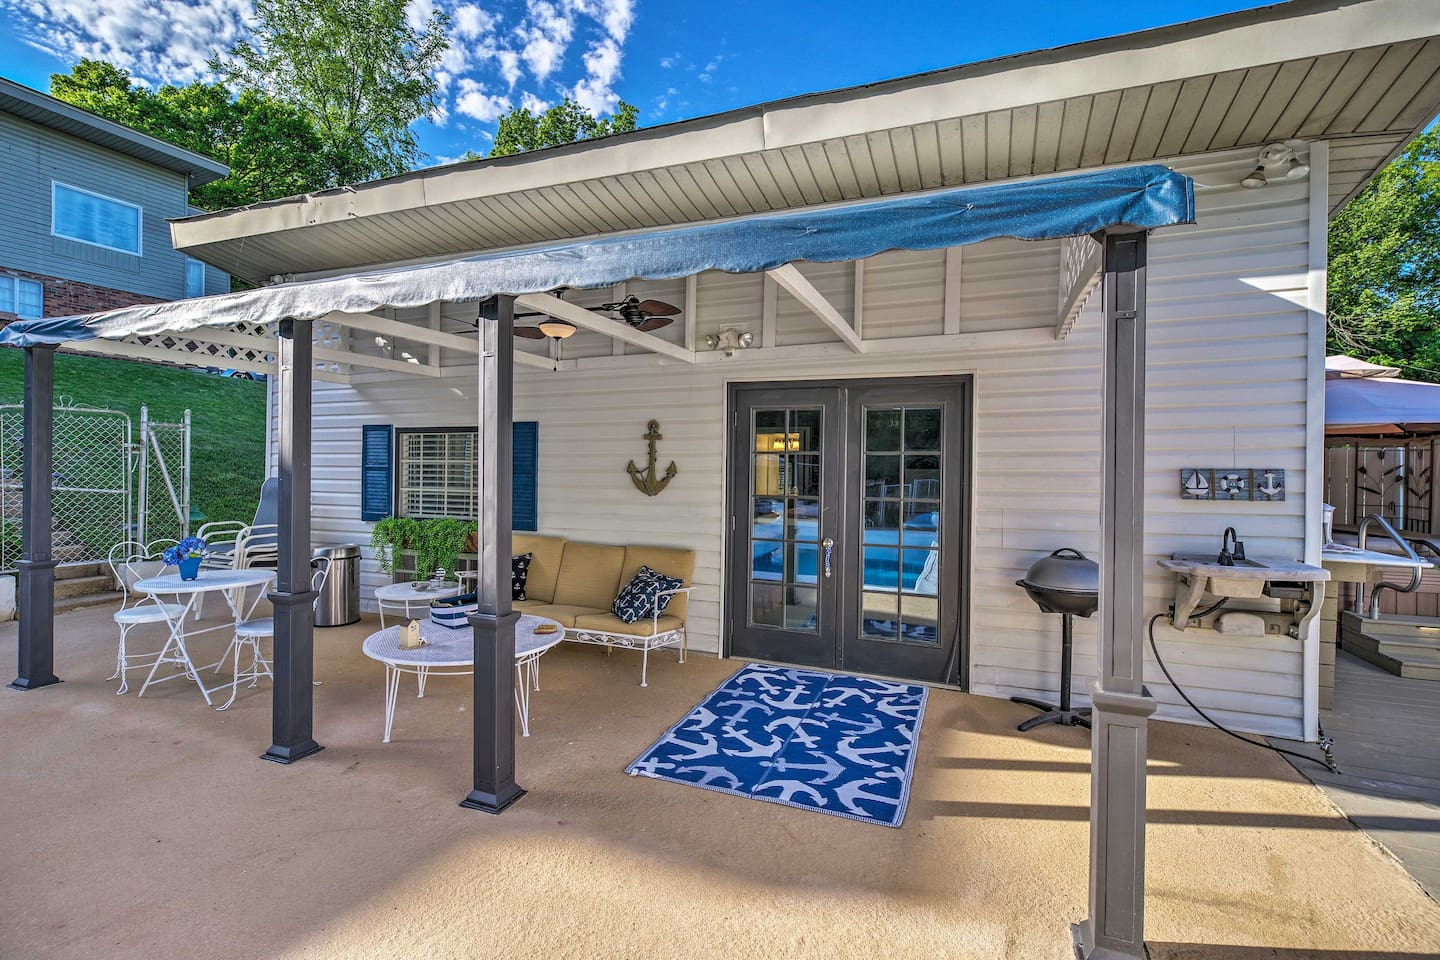 This vacation rental studio has a marvelous outdoor living space.